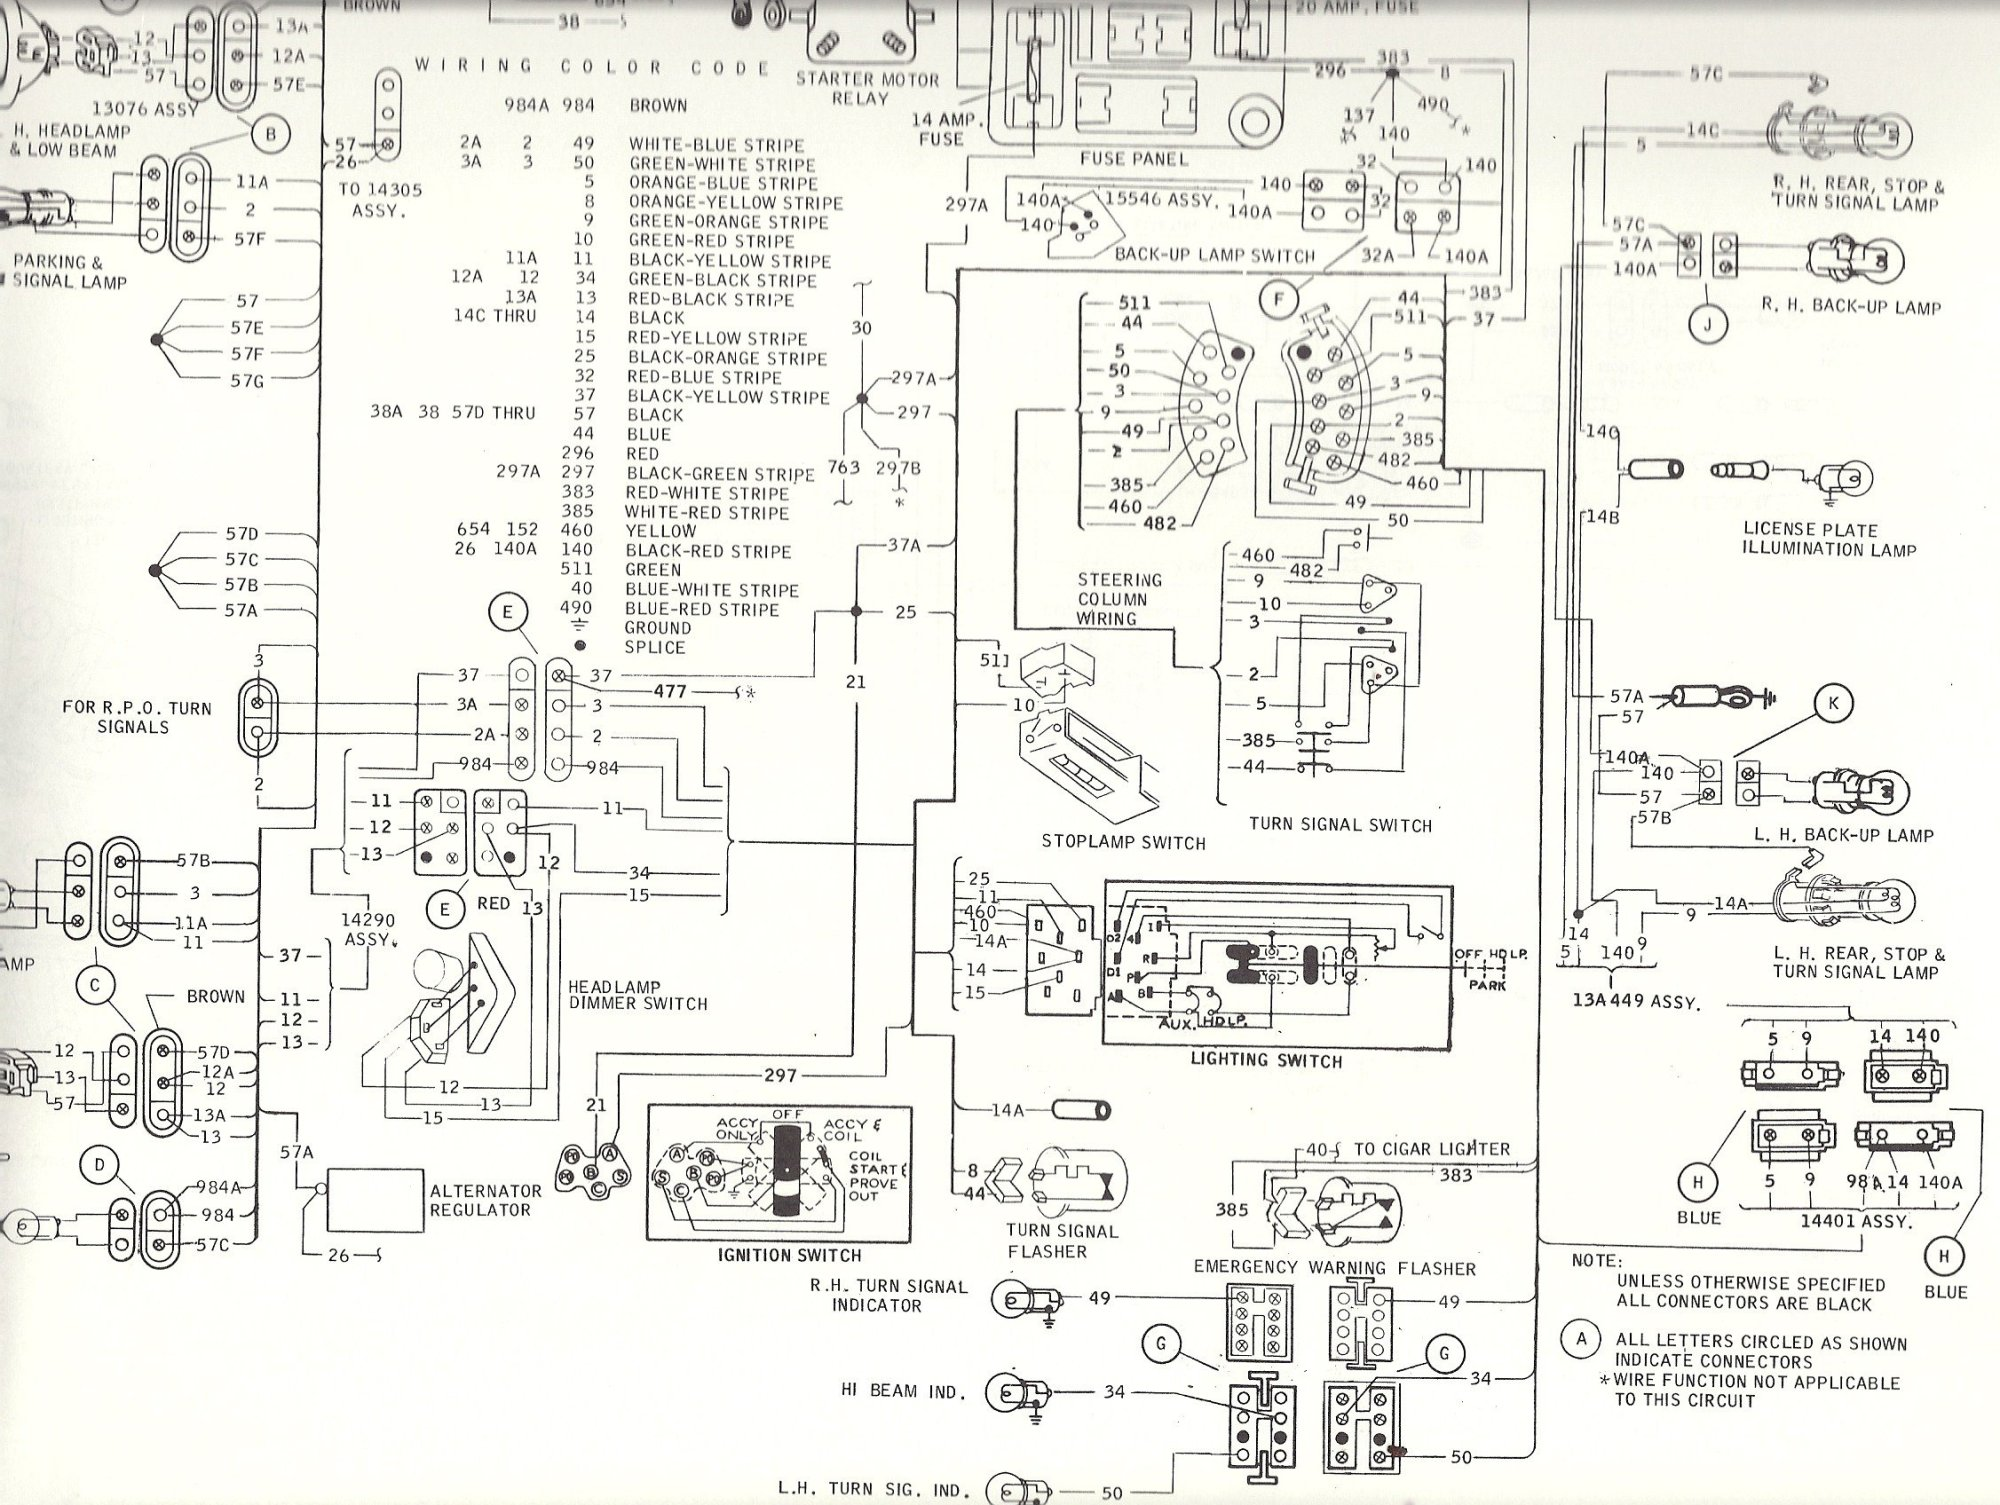 hight resolution of 69 mustang fuse box wiring library rh 5 bloxhuette de 1968 mustang alternator wiring diagram mustang wiring harness diagram